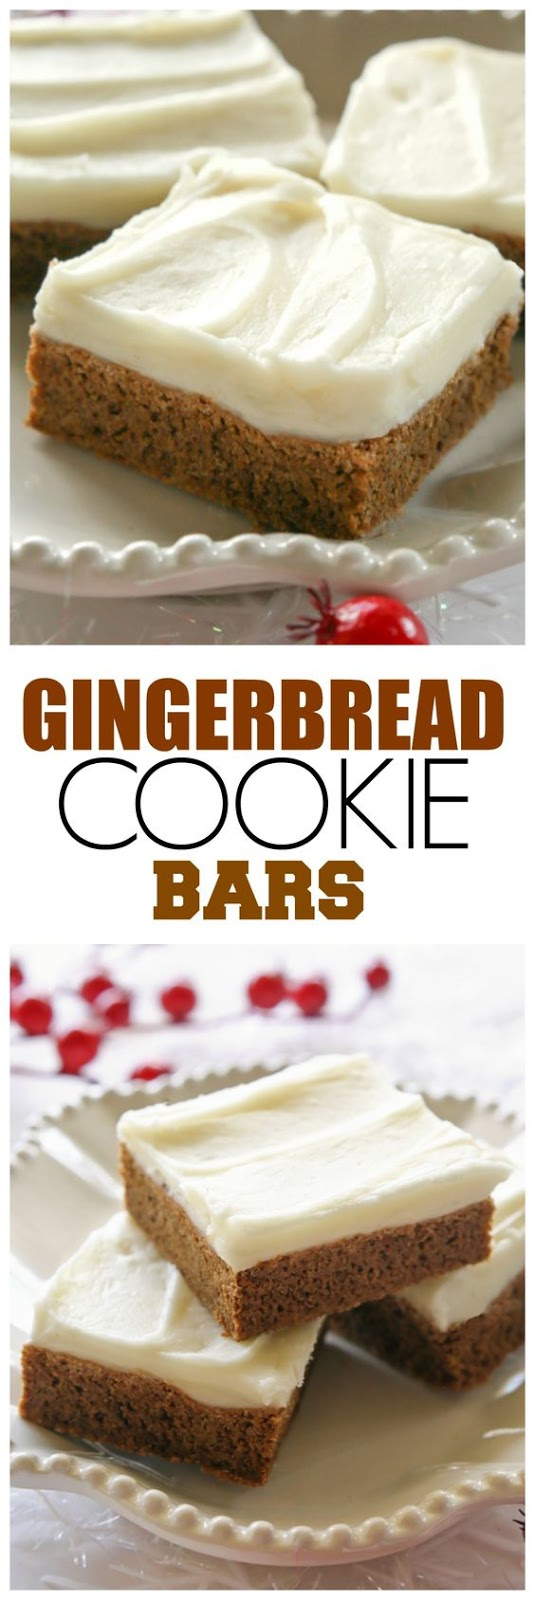 GINGERBREAD COOKIE BARS #GINGERBREAD #COOKIE #BARS   #DESSERTS #HEALTHYFOOD #EASY_RECIPES #DINNER #LAUCH #DELICIOUS #EASY #HOLIDAYS #RECIPE #SPECIAL_DIET #WORLD_CUISINE #CAKE #GRILL #APPETIZERS #HEALTHY_RECIPES #DRINKS #COOKING_METHOD #ITALIAN_RECIPES #MEAT #VEGAN_RECIPES #COOKIES #PASTA #FRUIT #SALAD #SOUP_APPETIZERS #NON_ALCOHOLIC_DRINKS #MEAL_PLANNING #VEGETABLES #SOUP #PASTRY #CHOCOLATE #DAIRY #ALCOHOLIC_DRINKS #BULGUR_SALAD #BAKING #SNACKS #BEEF_RECIPES #MEAT_APPETIZERS #MEXICAN_RECIPES #BREAD #ASIAN_RECIPES #SEAFOOD_APPETIZERS #MUFFINS #BREAKFAST_AND_BRUNCH #CONDIMENTS #CUPCAKES #CHEESE #CHICKEN_RECIPES #PIE #COFFEE #NO_BAKE_DESSERTS #HEALTHY_SNACKS #SEAFOOD #GRAIN #LUNCHES_DINNERS #MEXICAN #QUICK_BREAD #LIQUOR